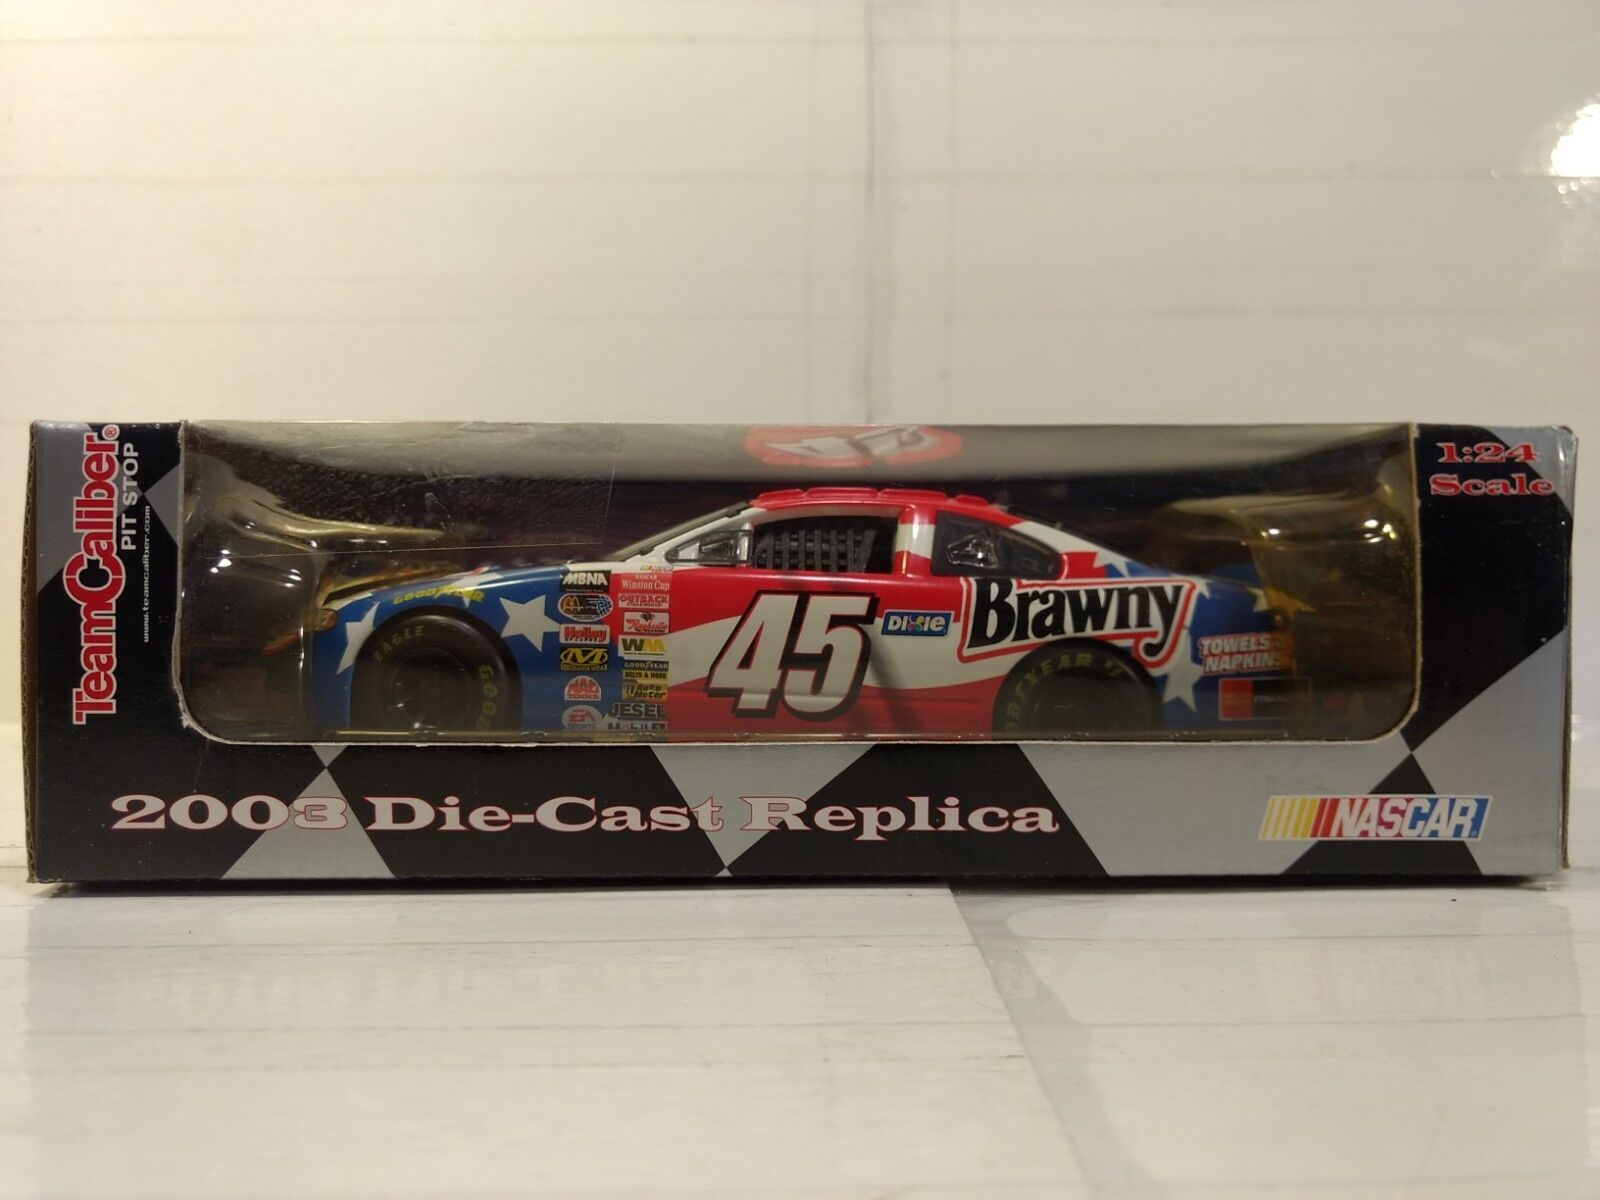 Team Caliber Fosse Stop Kyle Petty Brawny Dodge 1 24 Echelle 2003